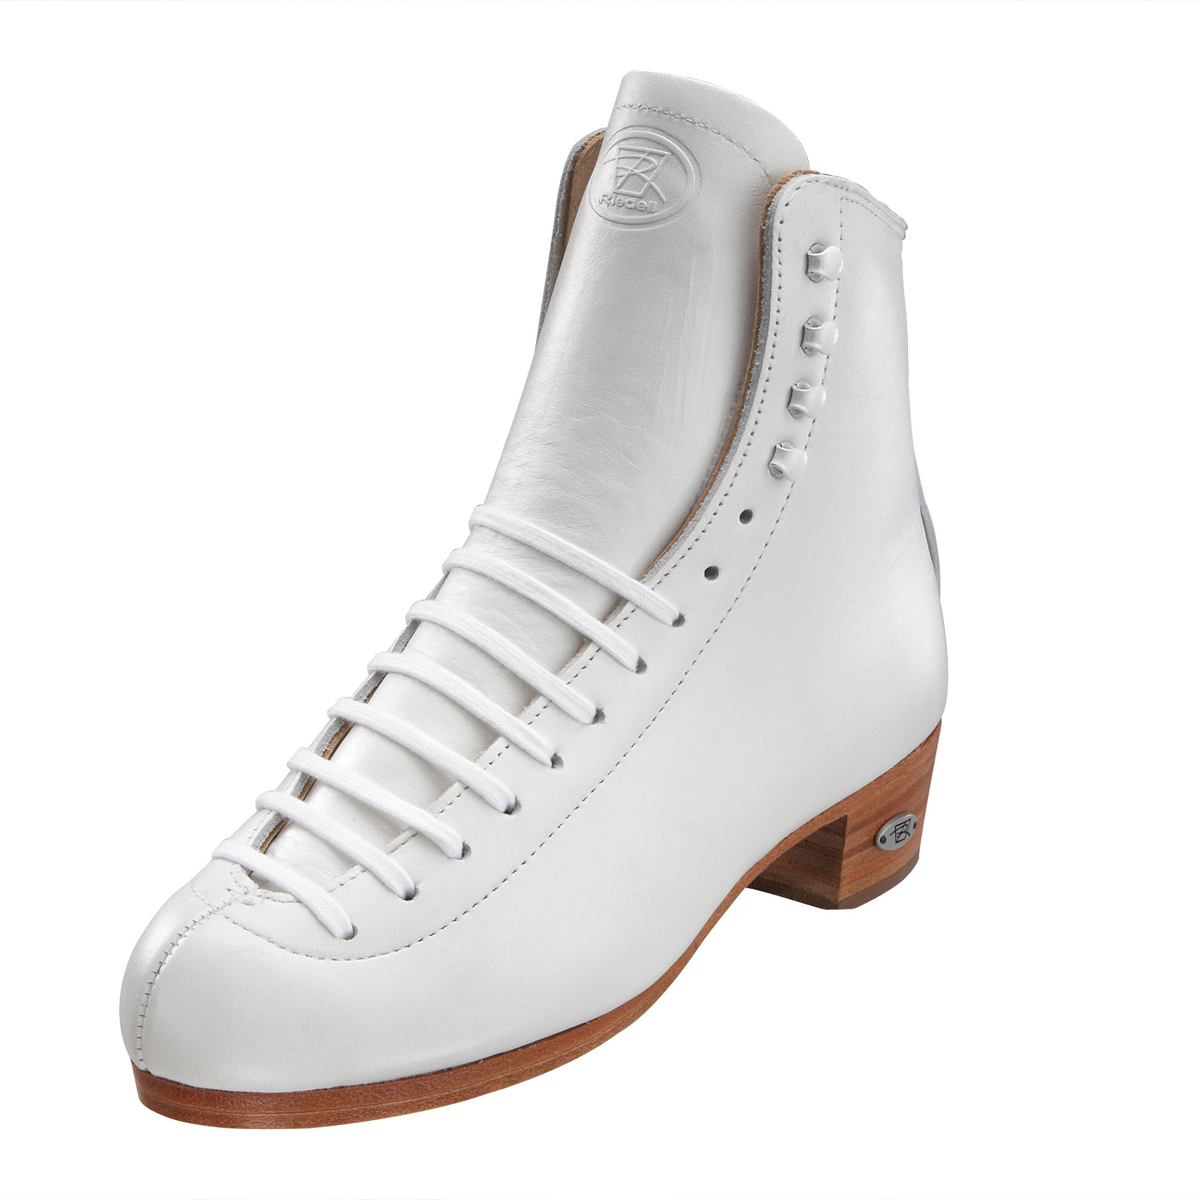 297 Professional White Boot Only